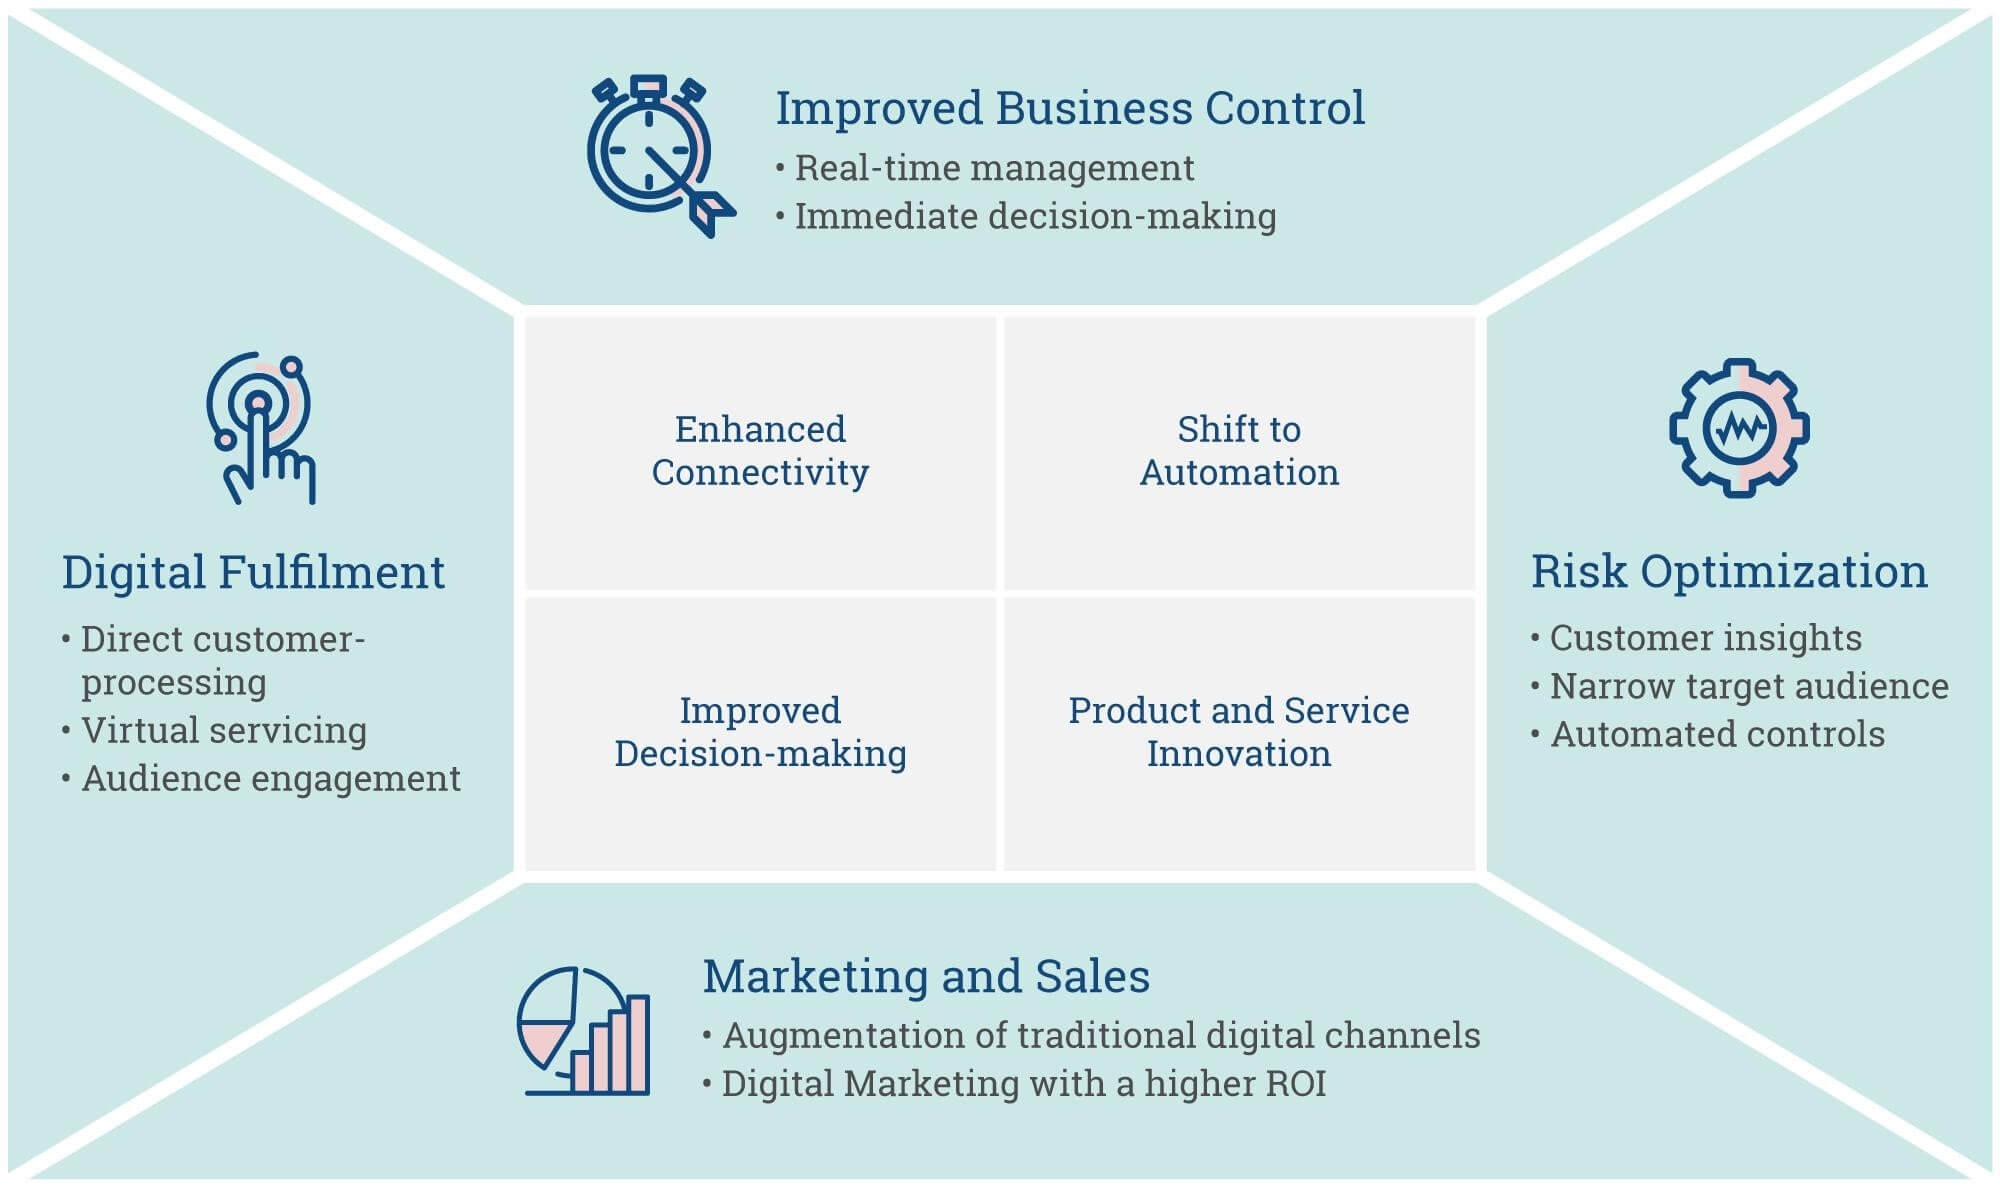 You can find Improved Business Control, Digital Fulfillment, Risk Optimization and Marketing and Sales benefits by digitally transforming your business.